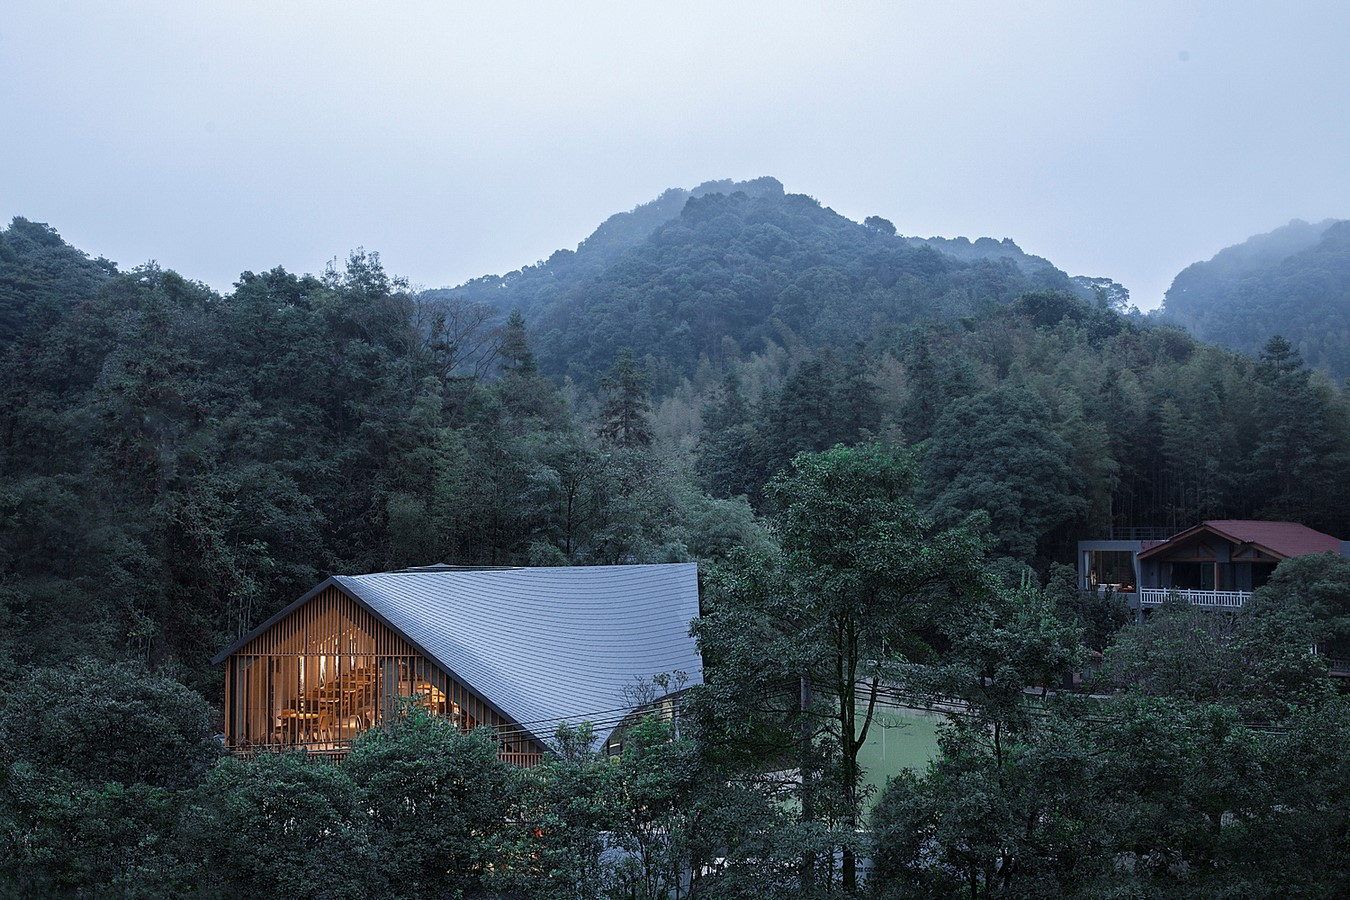 Restaurant With Cave-Like Roof In A Forest In Huizhou, China completed by Wildurban Architects - Sheet3